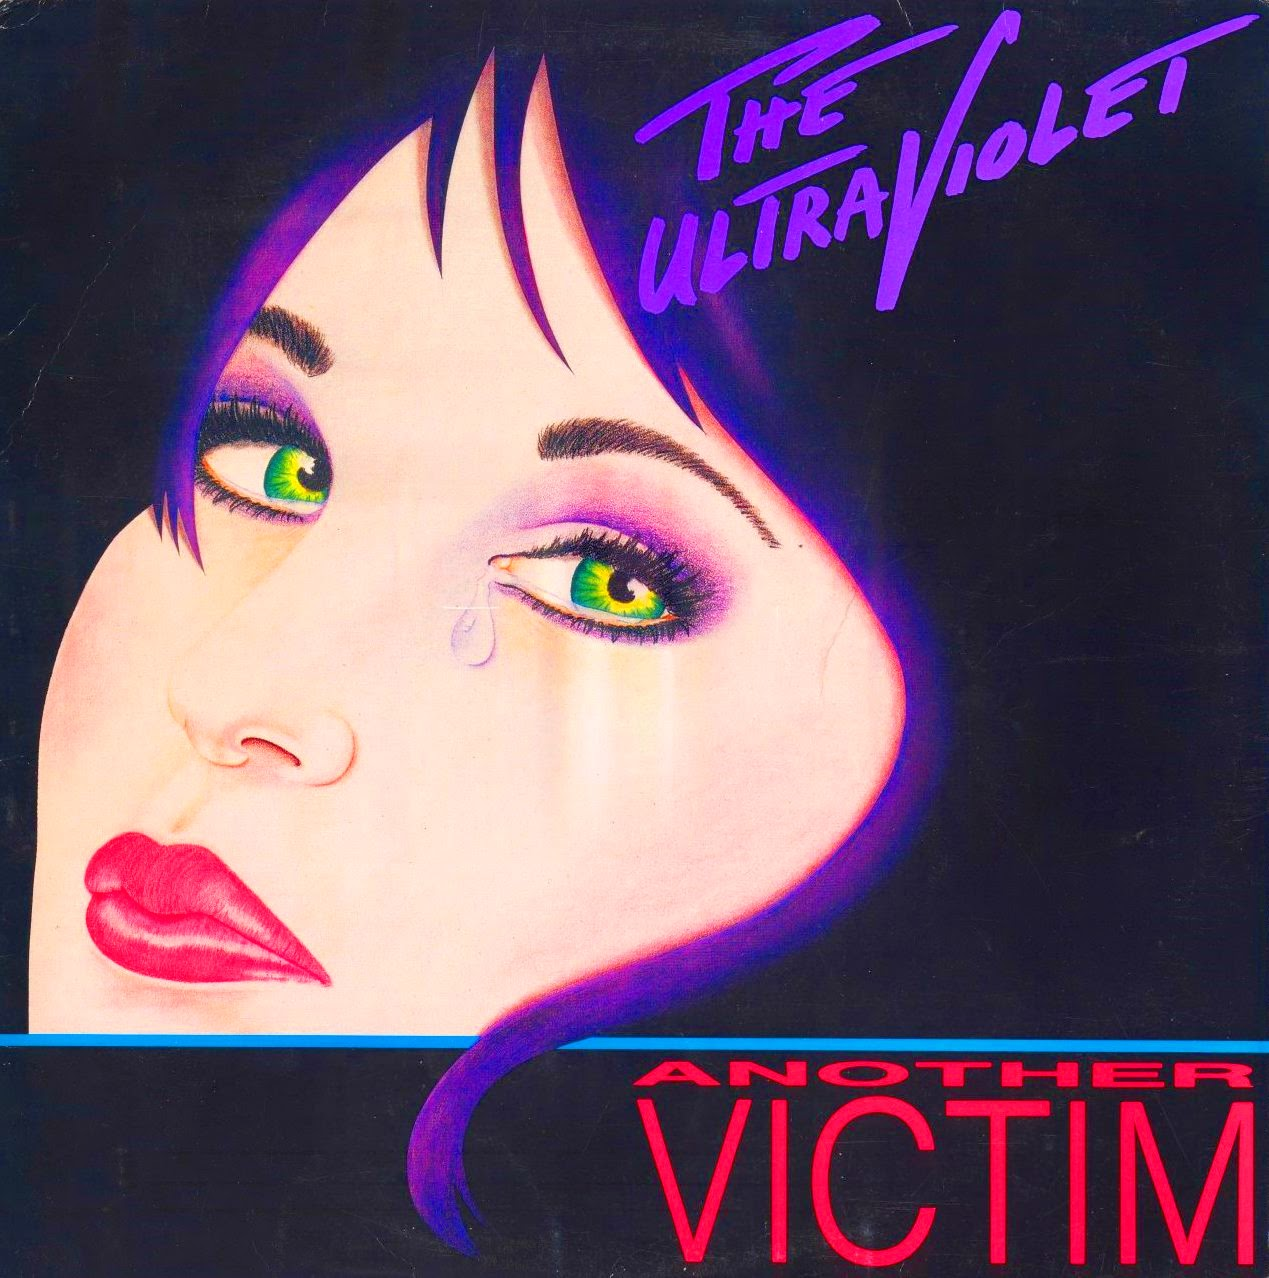 The Ultraviolet Another victim 1986 aor melodic rock